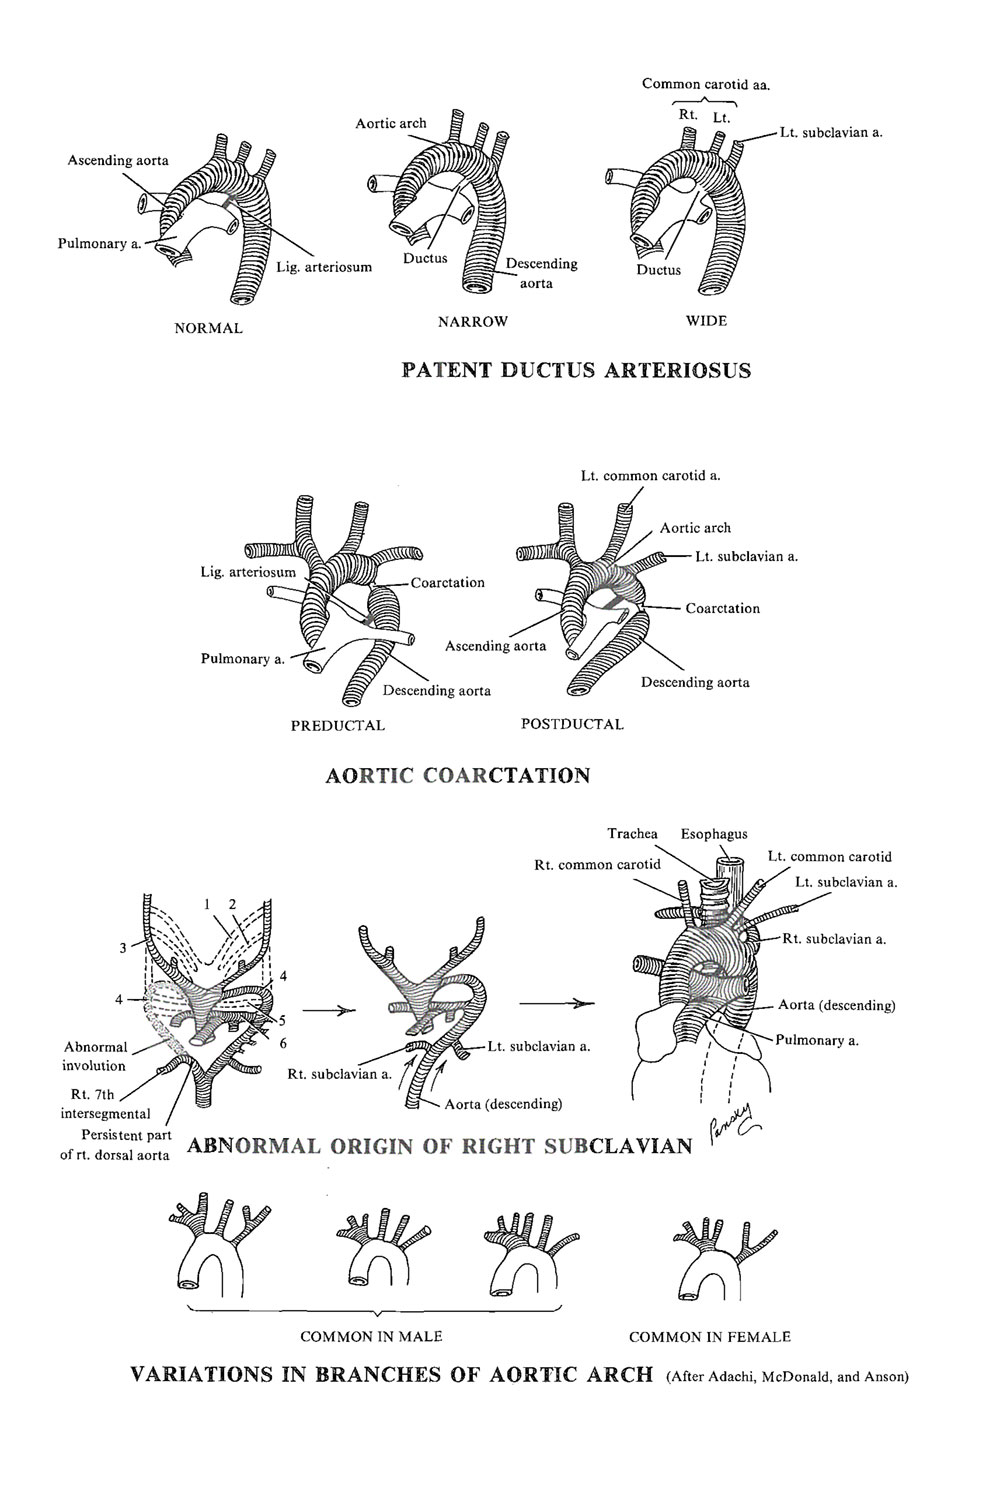 malformations of the  cardiovascular system: image #1